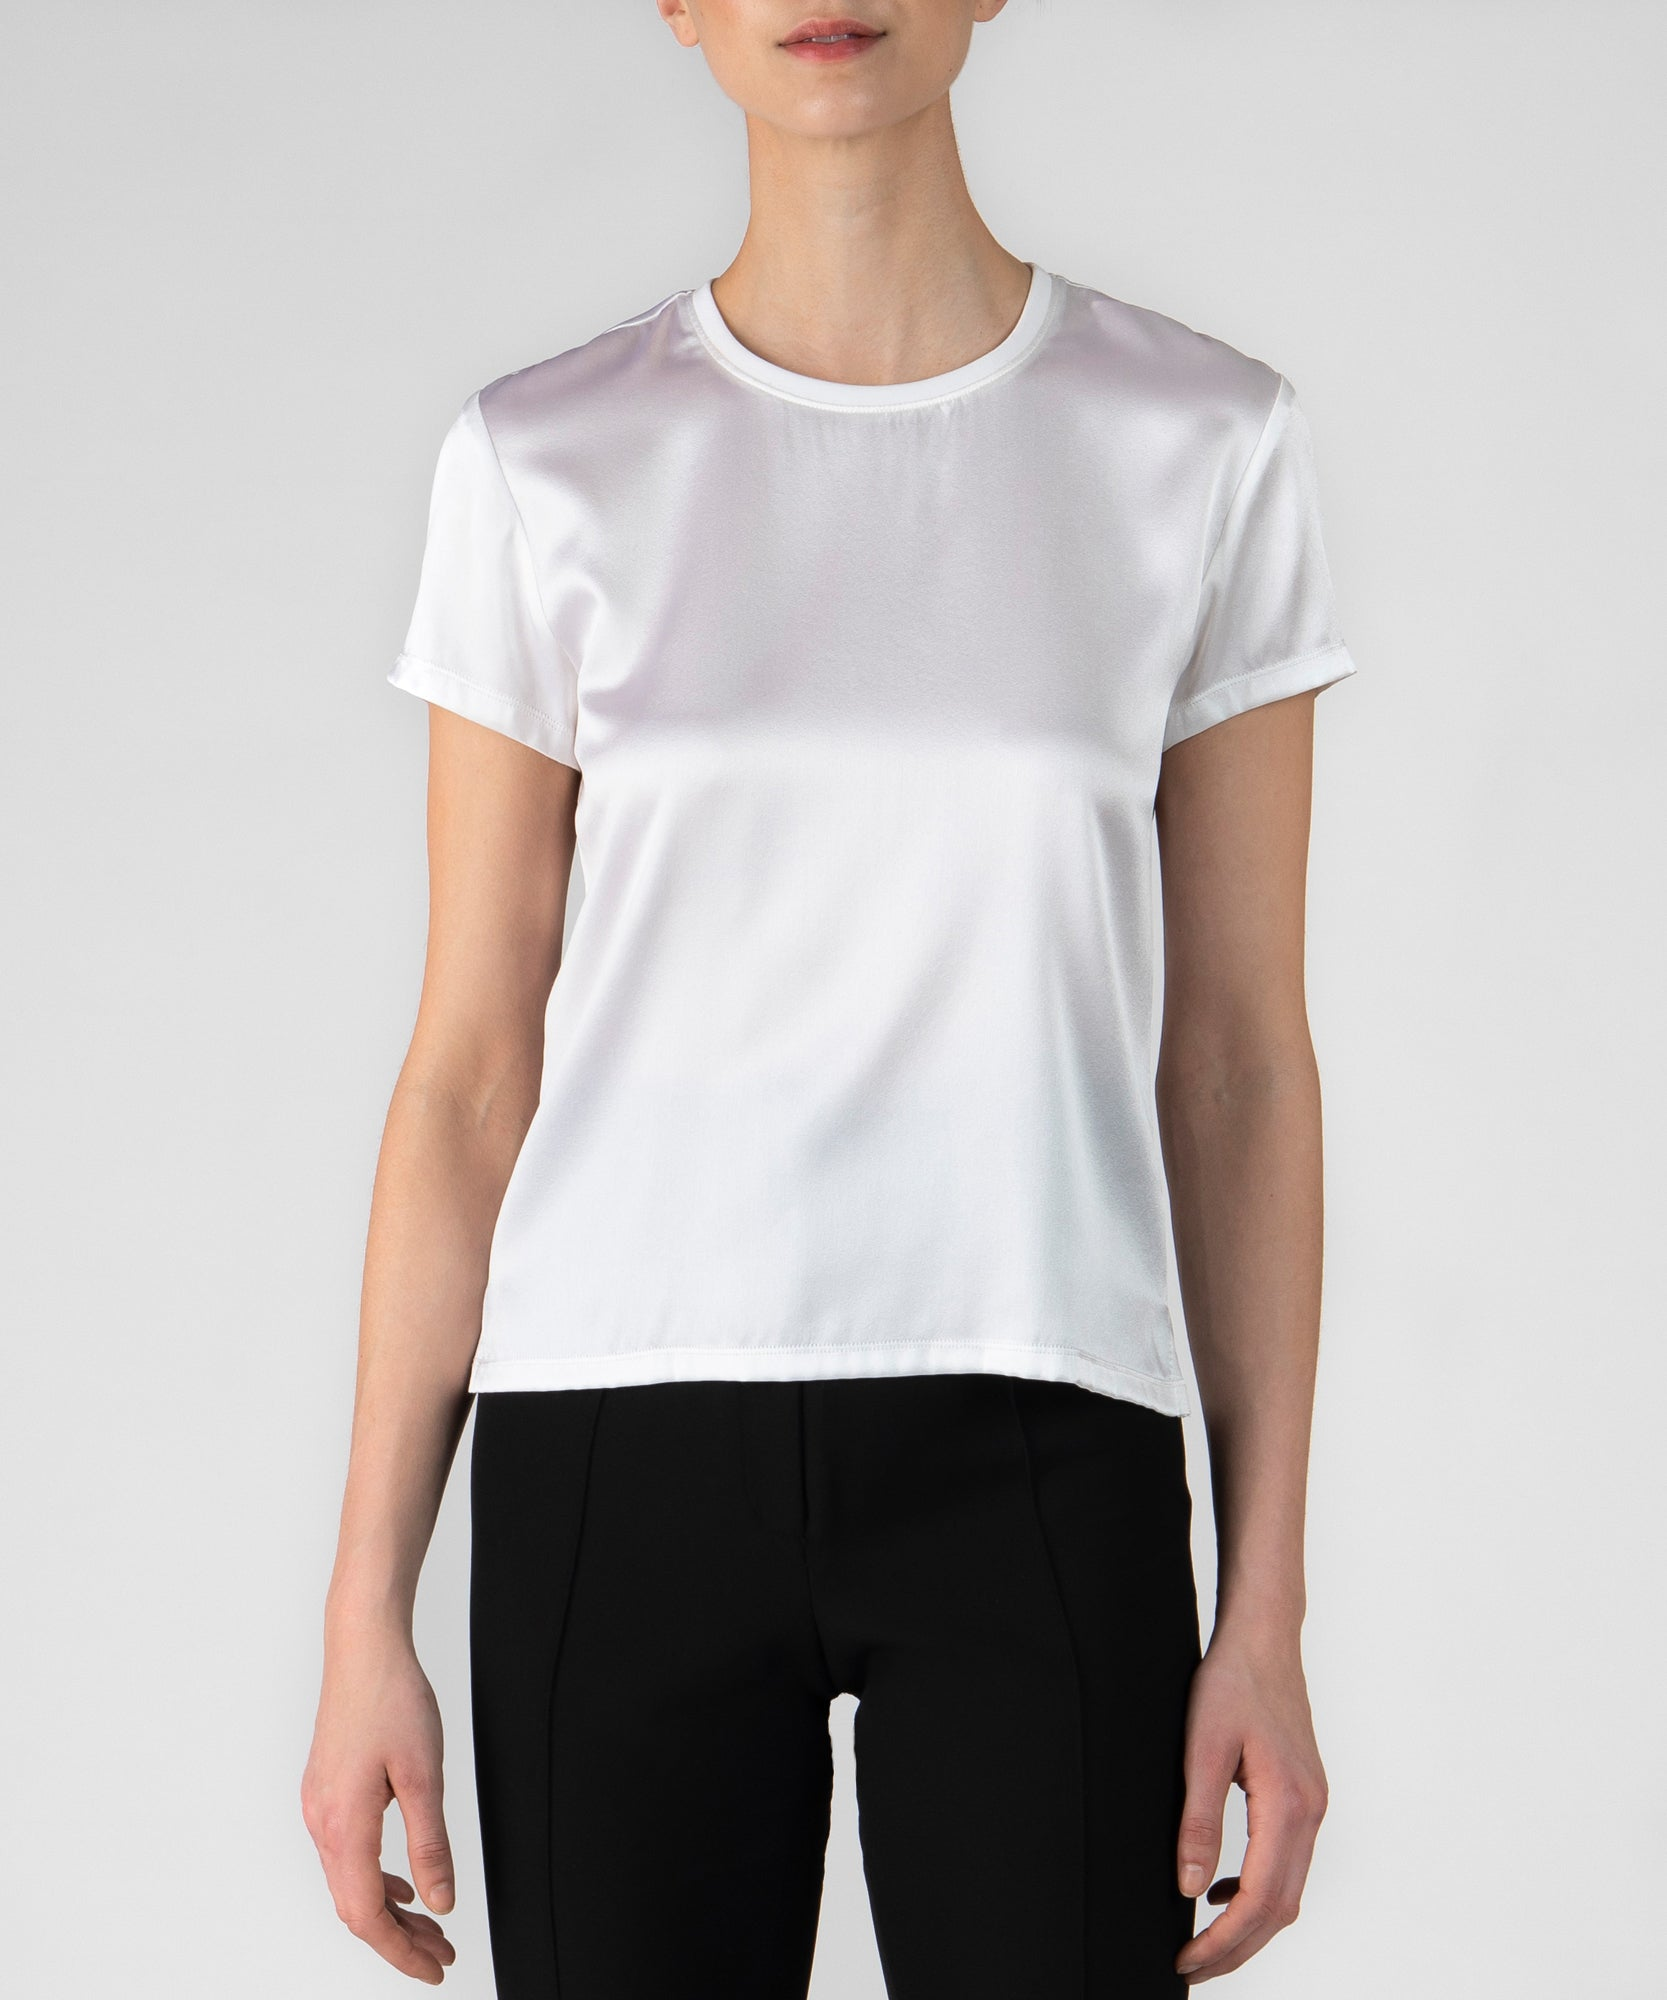 White Silk Blend Crew Neck Tee - Women's Luxe Top by ATM Anthony Thomas Melillo